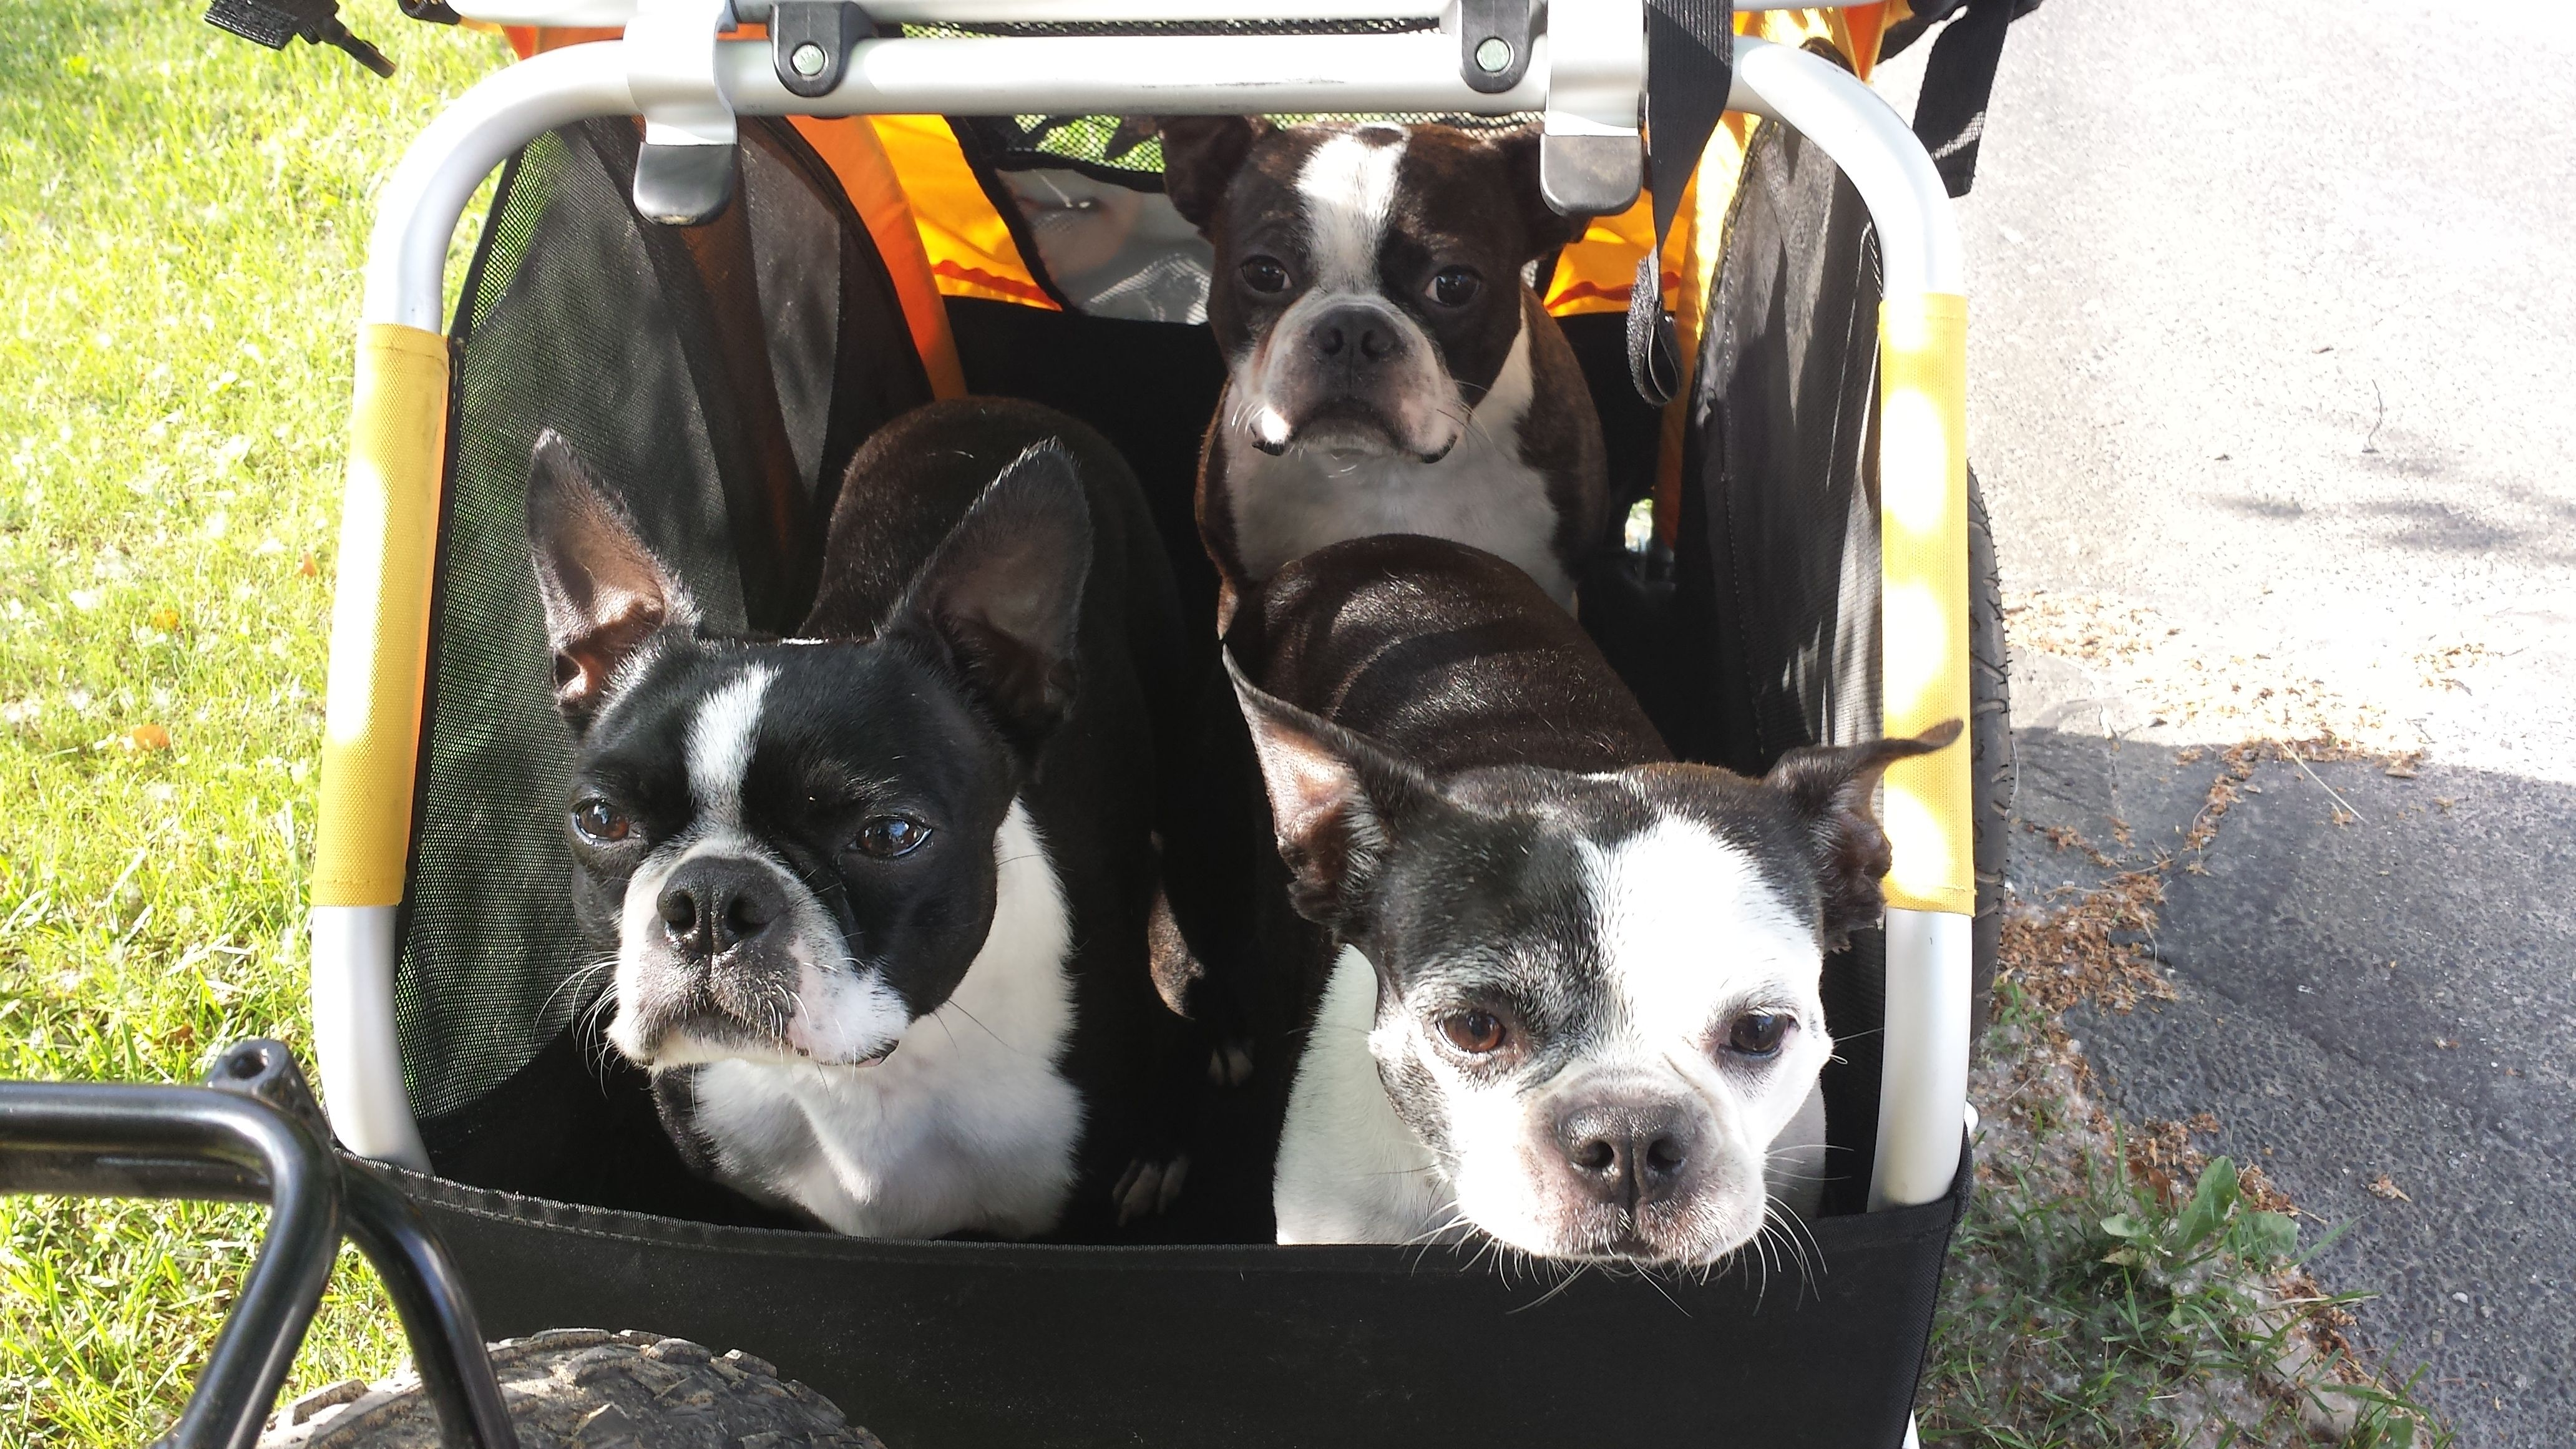 Donalds French Bulldogs Lets Go Already Burley Tailwagon Cute Pet Bike Trailer Pets Furry Friend